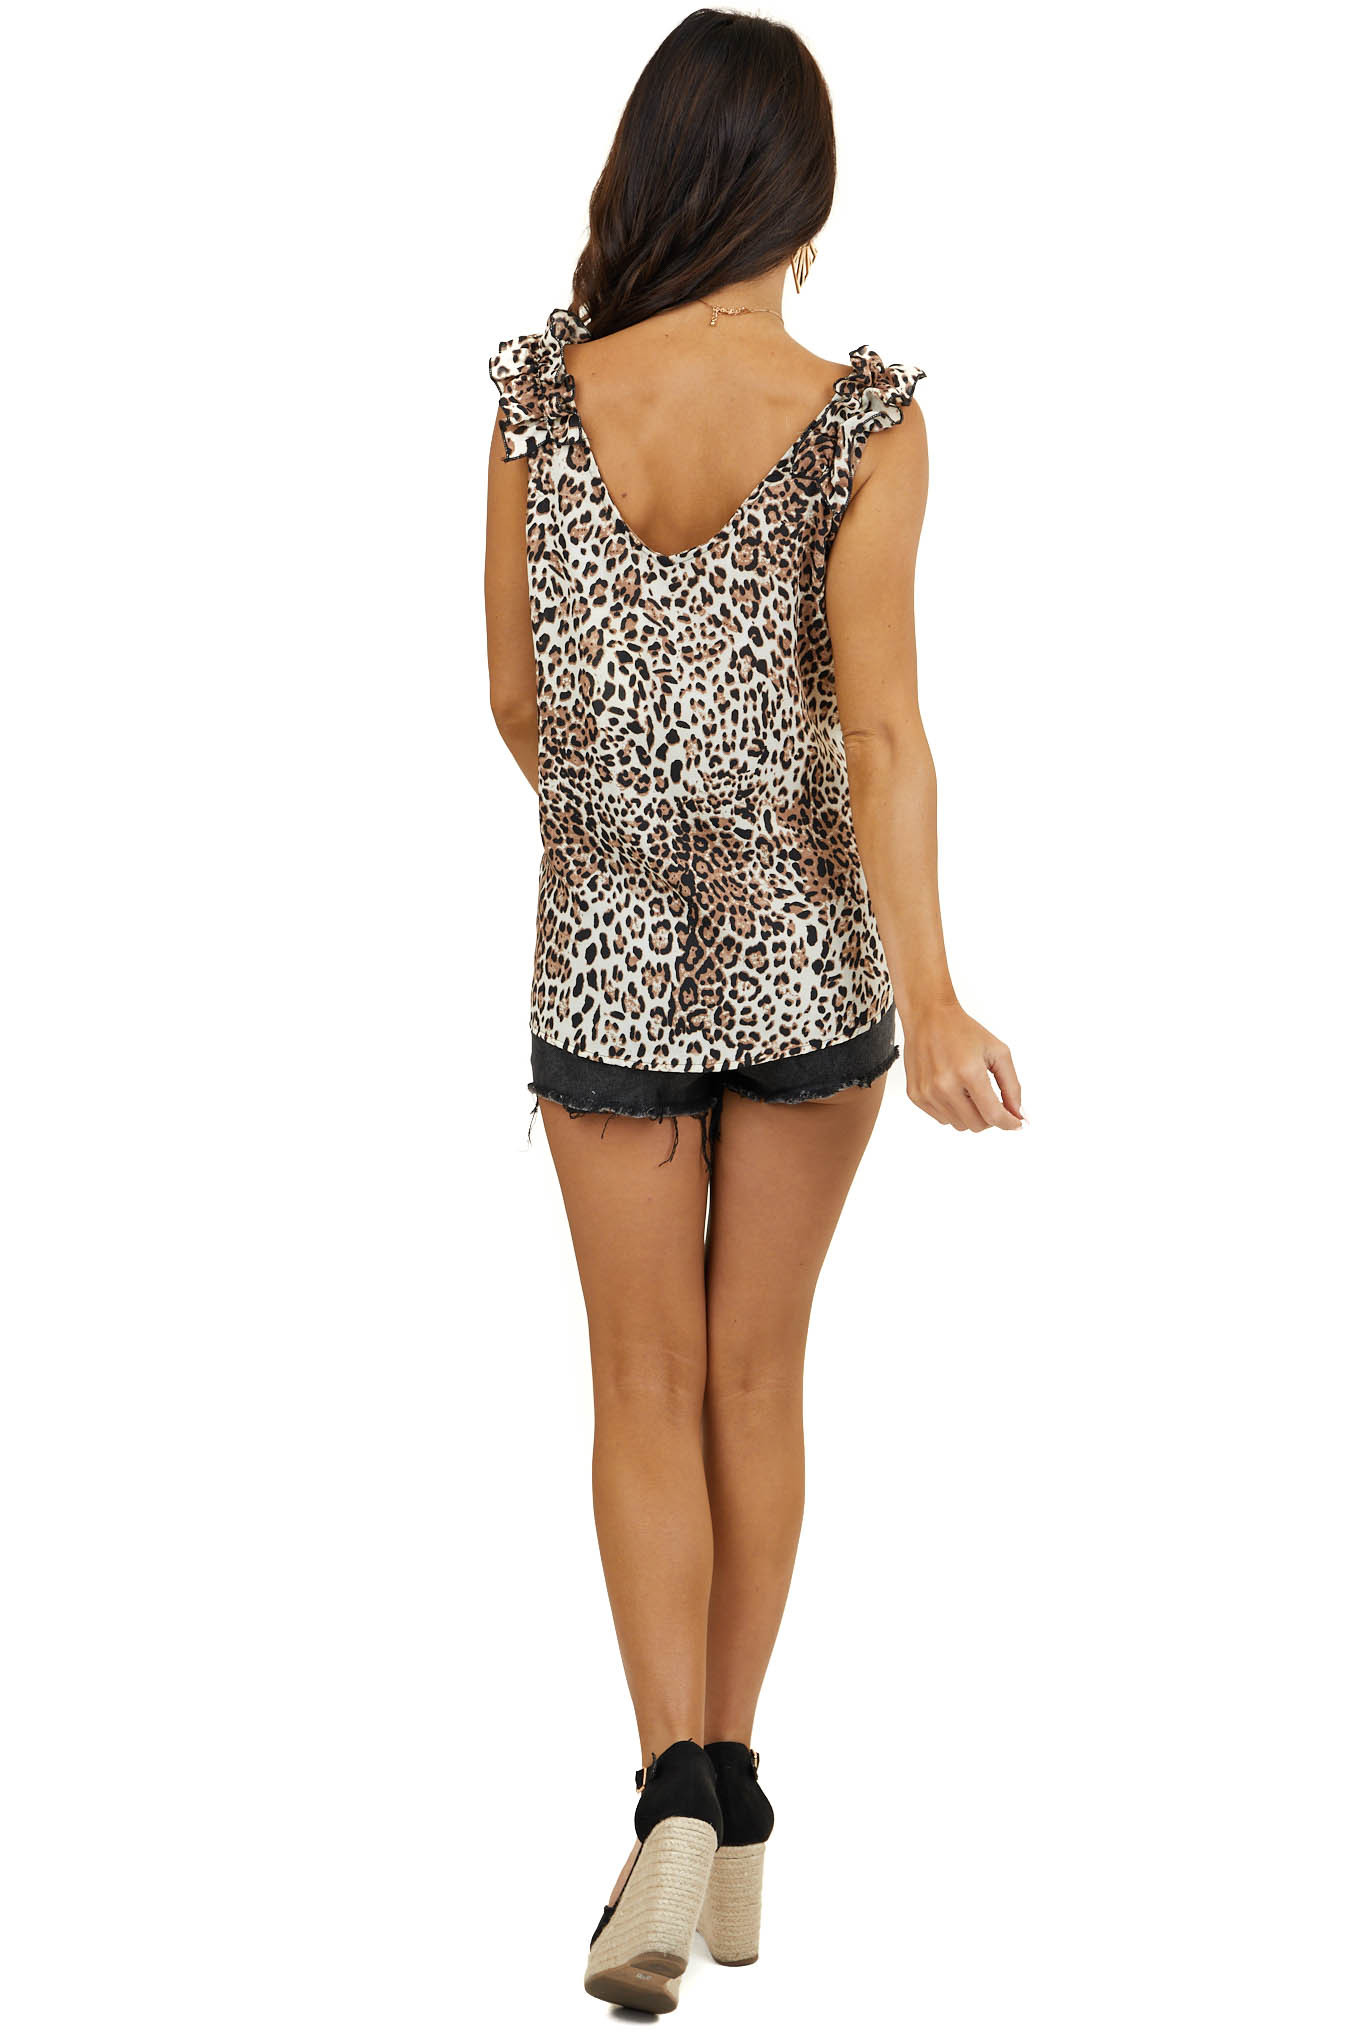 Cream and Camel Leopard Print Tank Top with Ruffle Straps